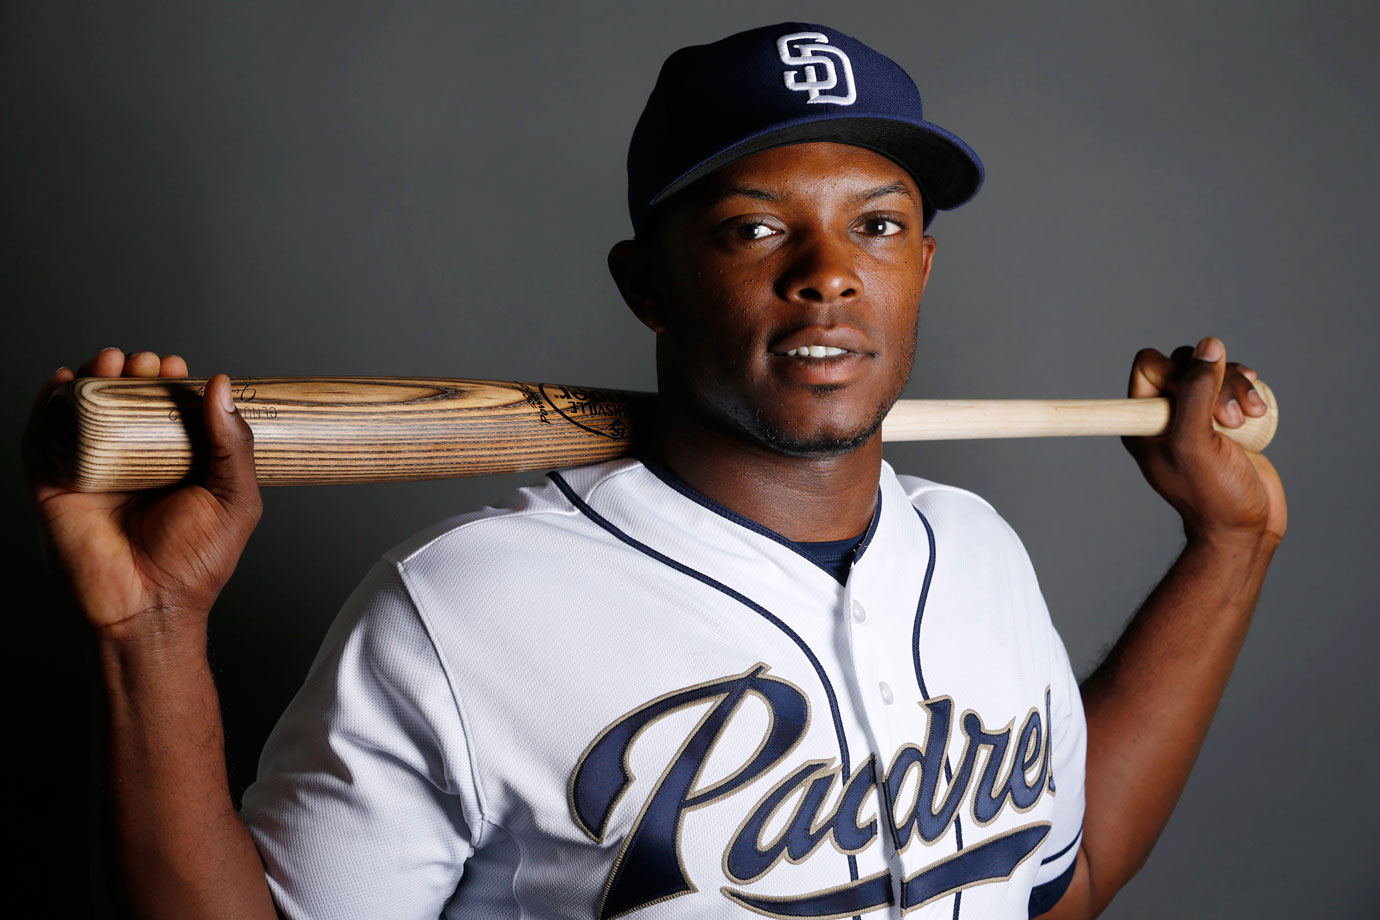 Highest salaries: Melvin Upton Jr. ($15,050,000), Justin Upton ($14,708,333)